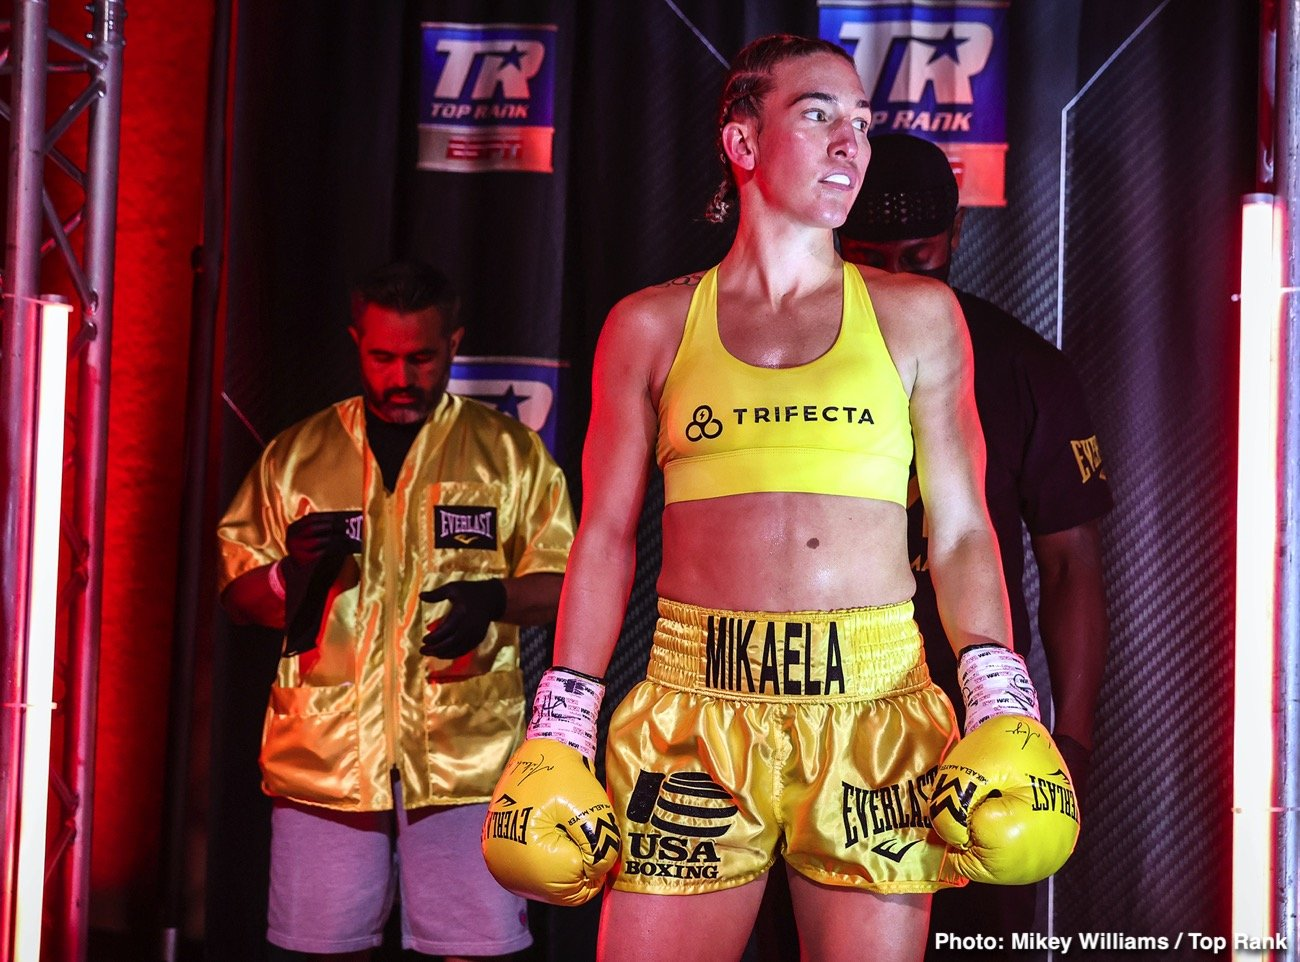 Ewa Brodnicka, Jason Moloney, Mikaela Mayer, Naoya Inoue - Mikaela Mayer called on the junior lightweight world champions for a fight. One of them was mandated to answer.